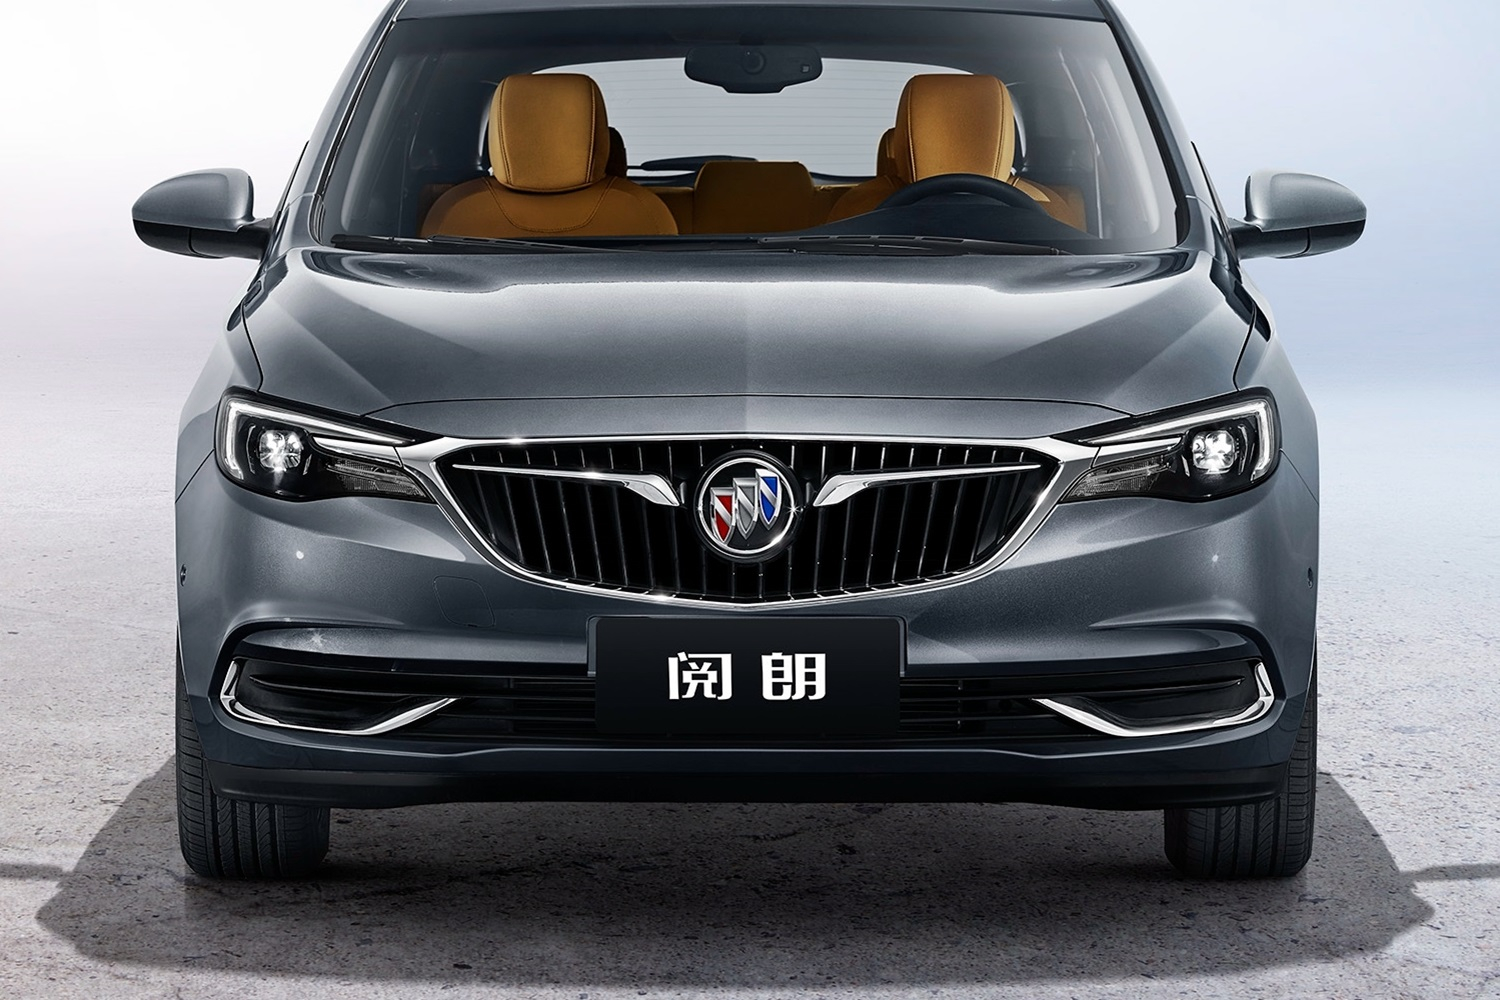 Buick Completes Update Of Sedan Portfolio In China | Gm 2022 Buick Verano Trim Levels, Performance Parts, Cost